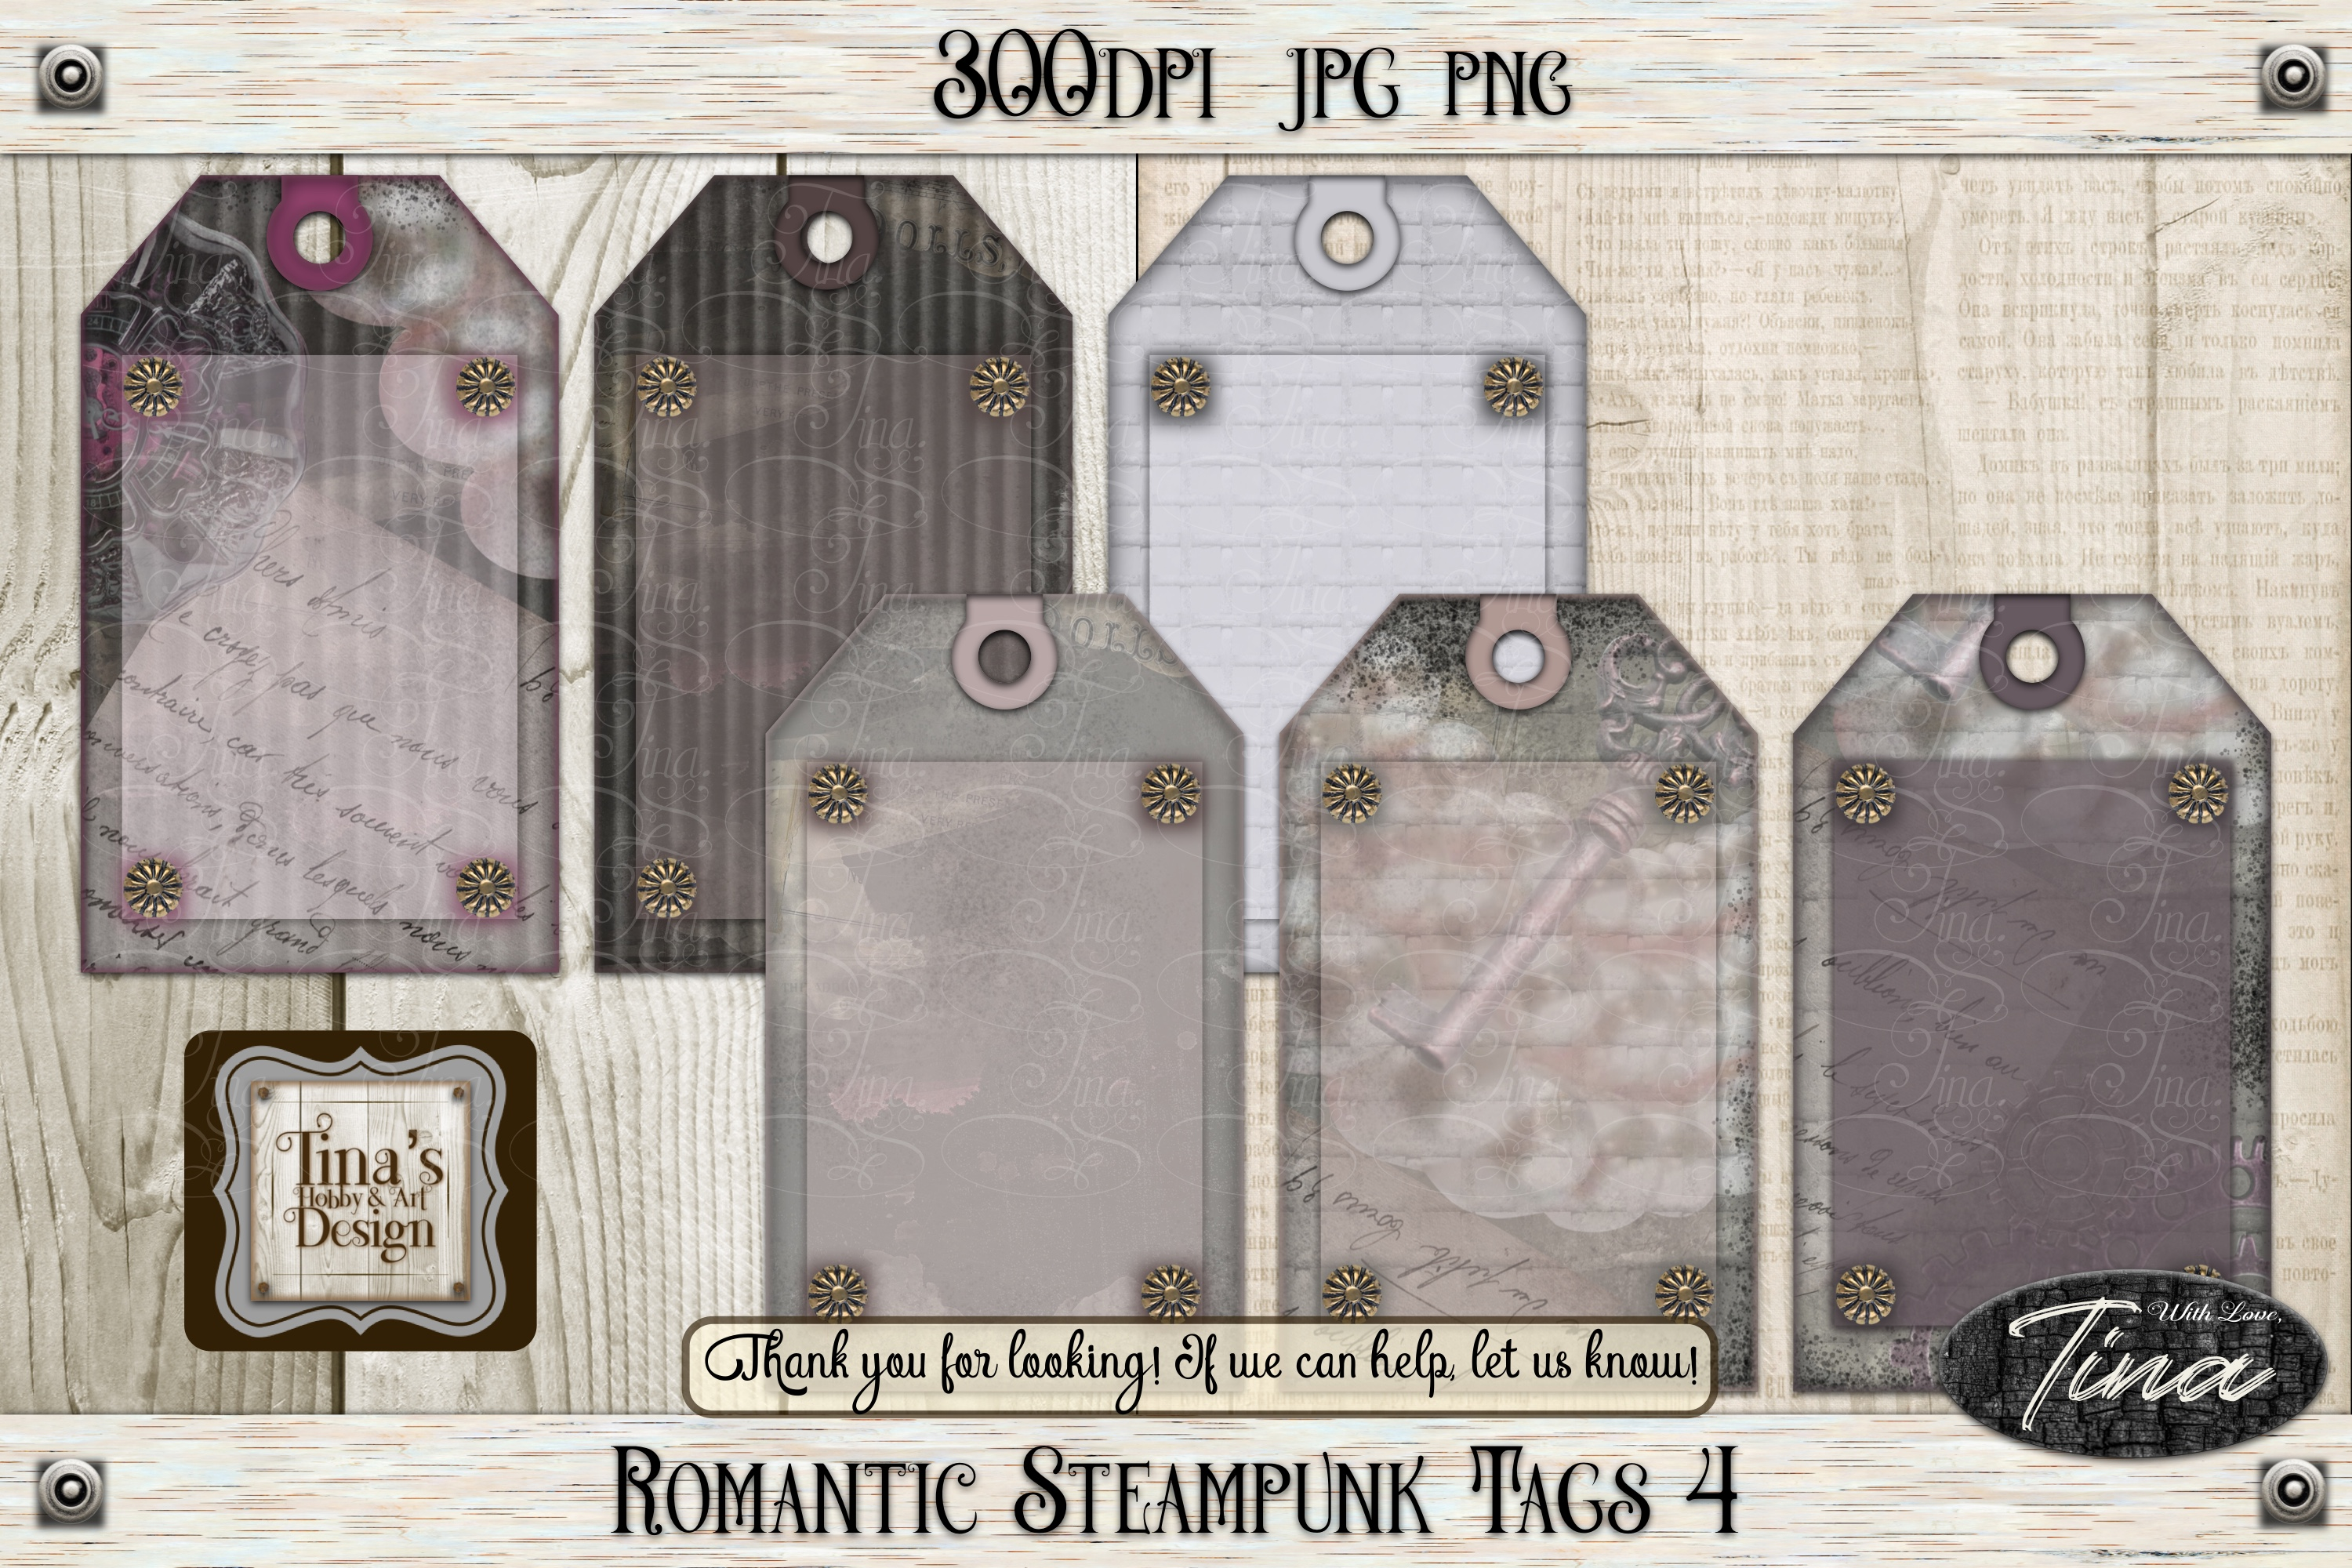 Romantic Steampunk 8.5x11 Collage Mauve Grunge 101918RS8 example image 10